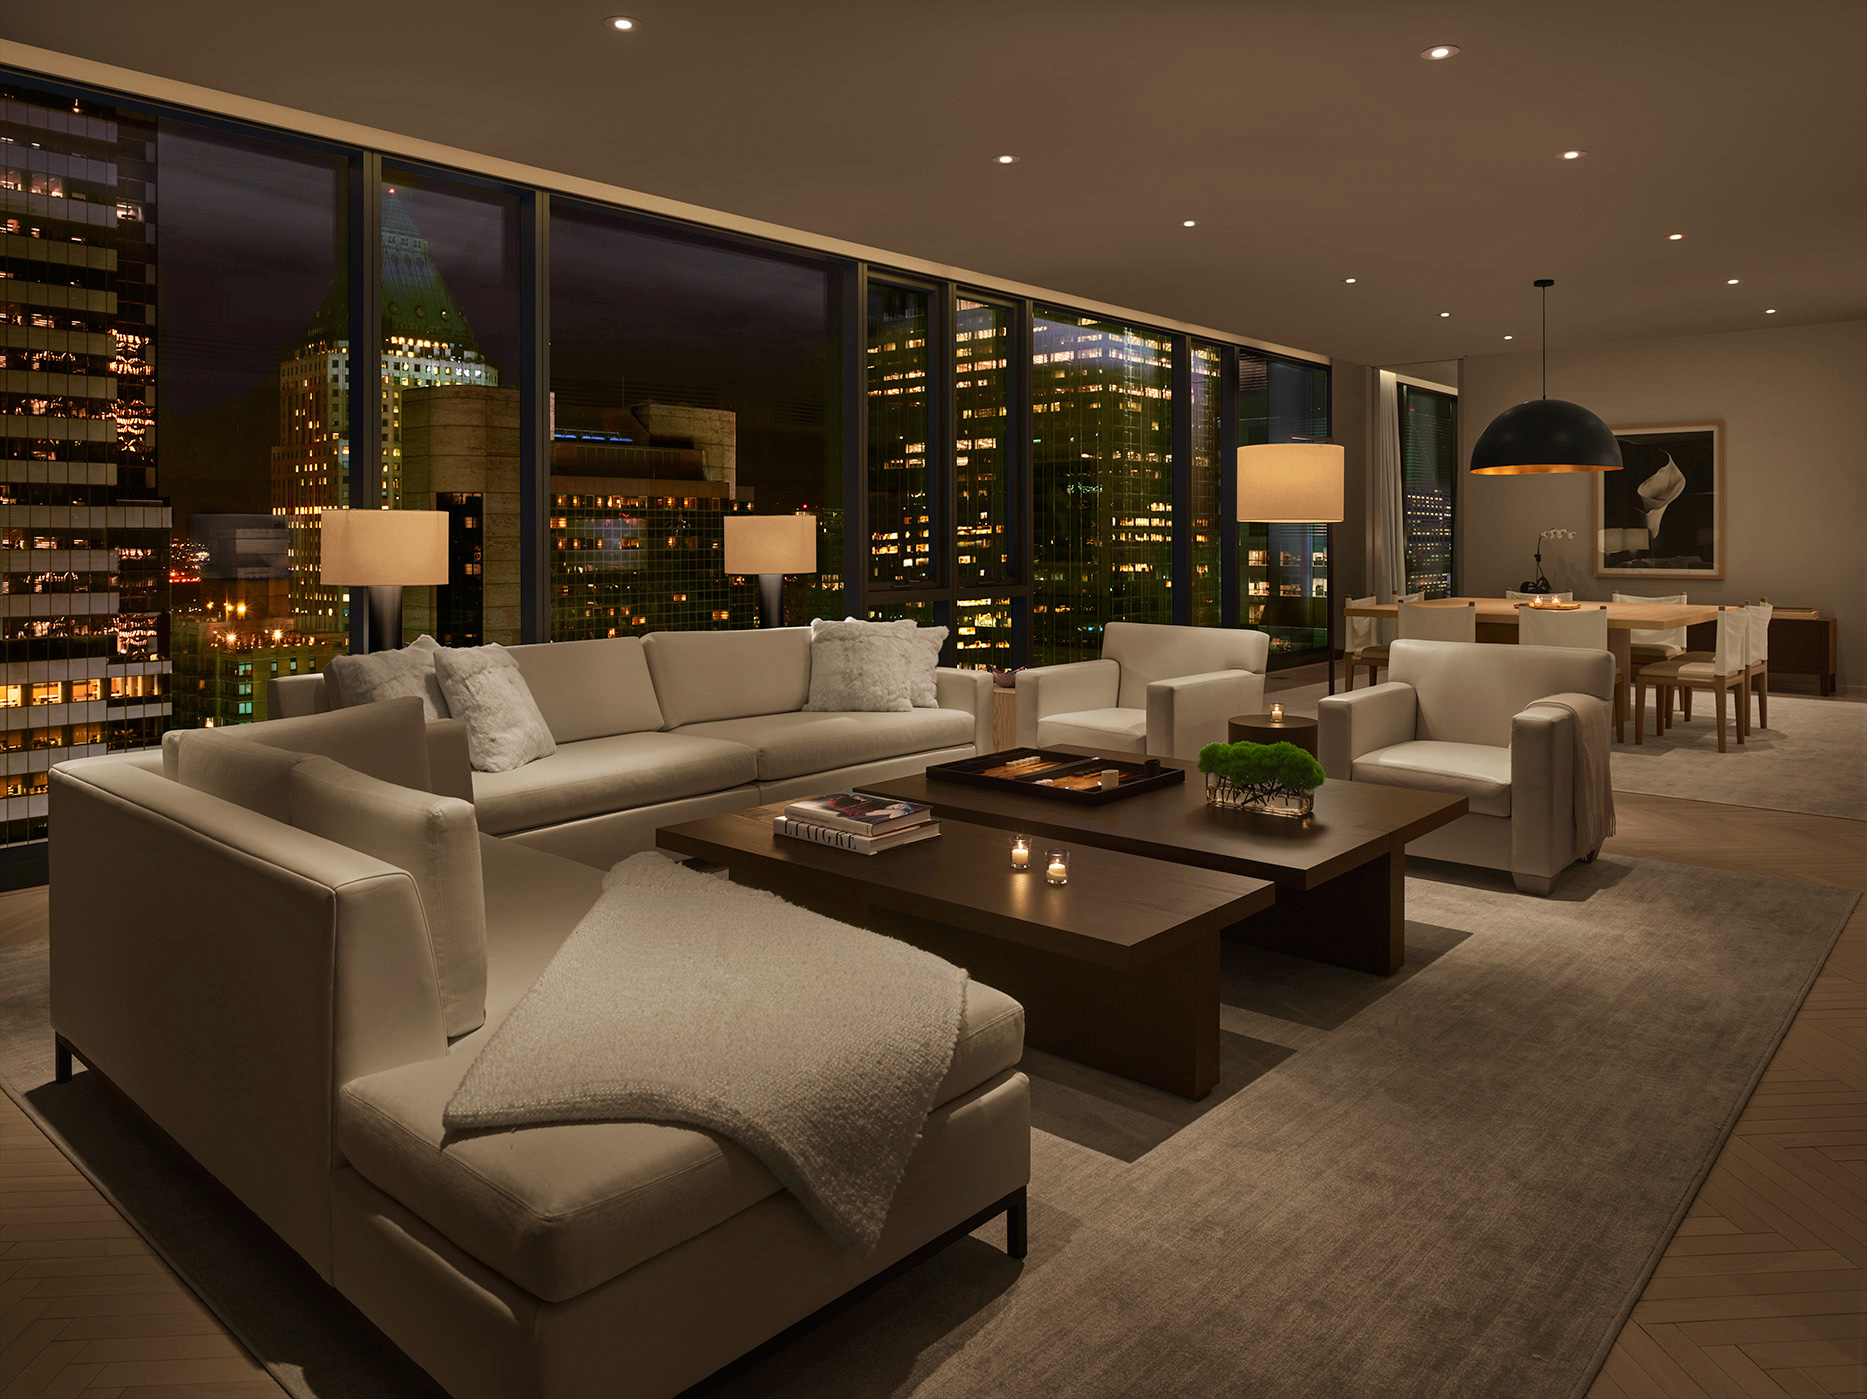 The living room of a penthouse | Times Square Edition | Yabu-Pushelberg | Ian Schrager | STIRworld